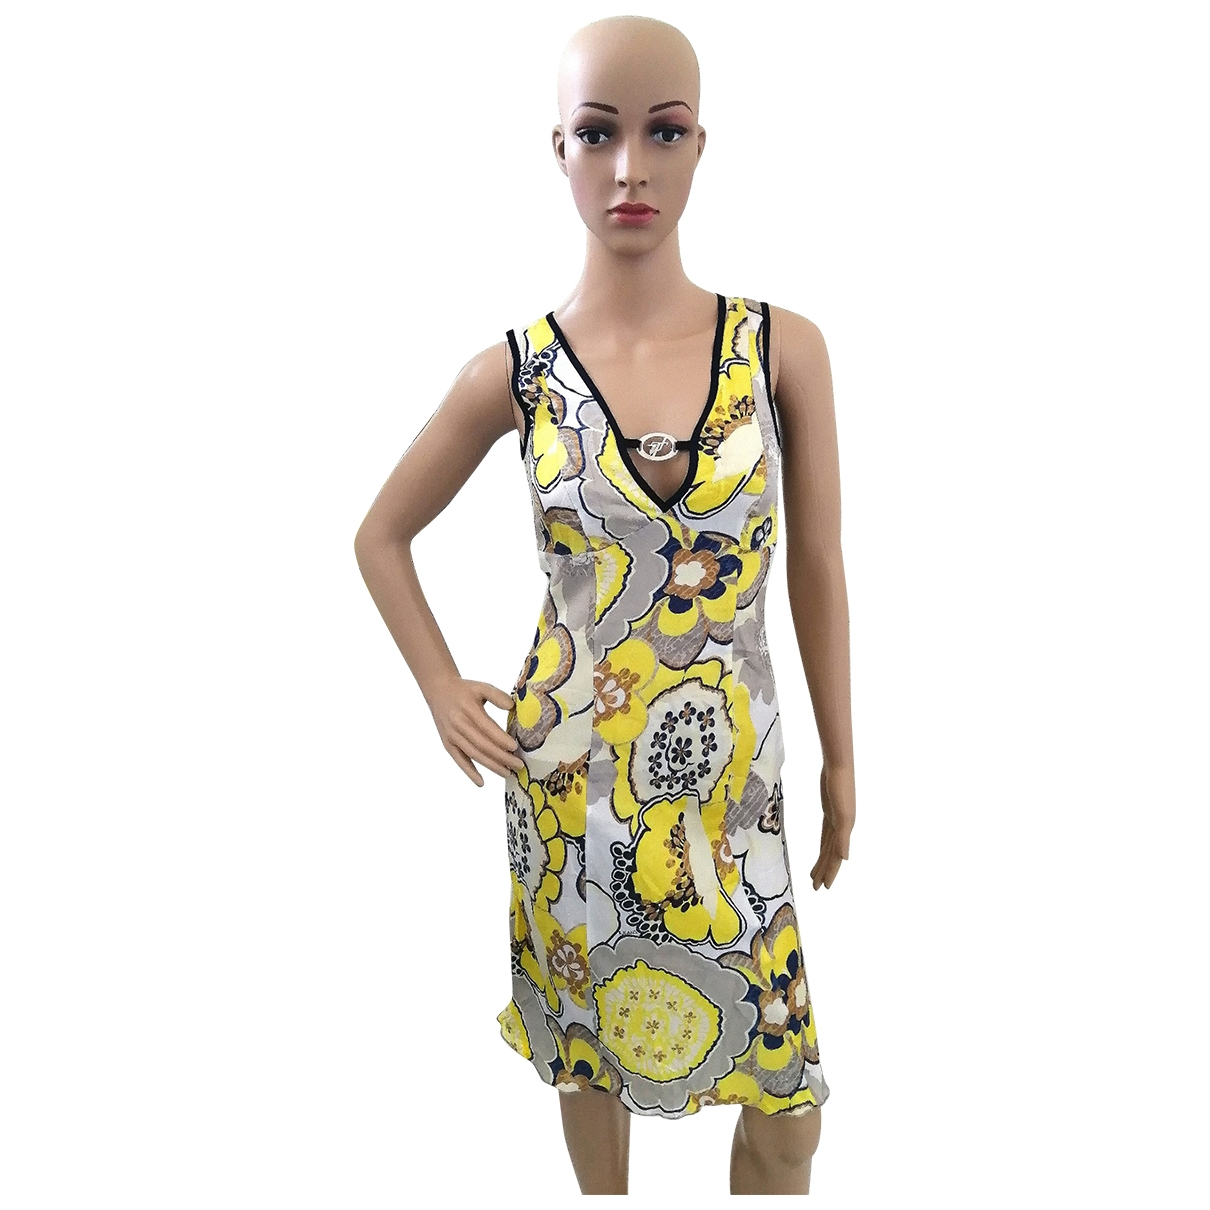 Trussardi Jeans \N Yellow dress for Women 38 IT